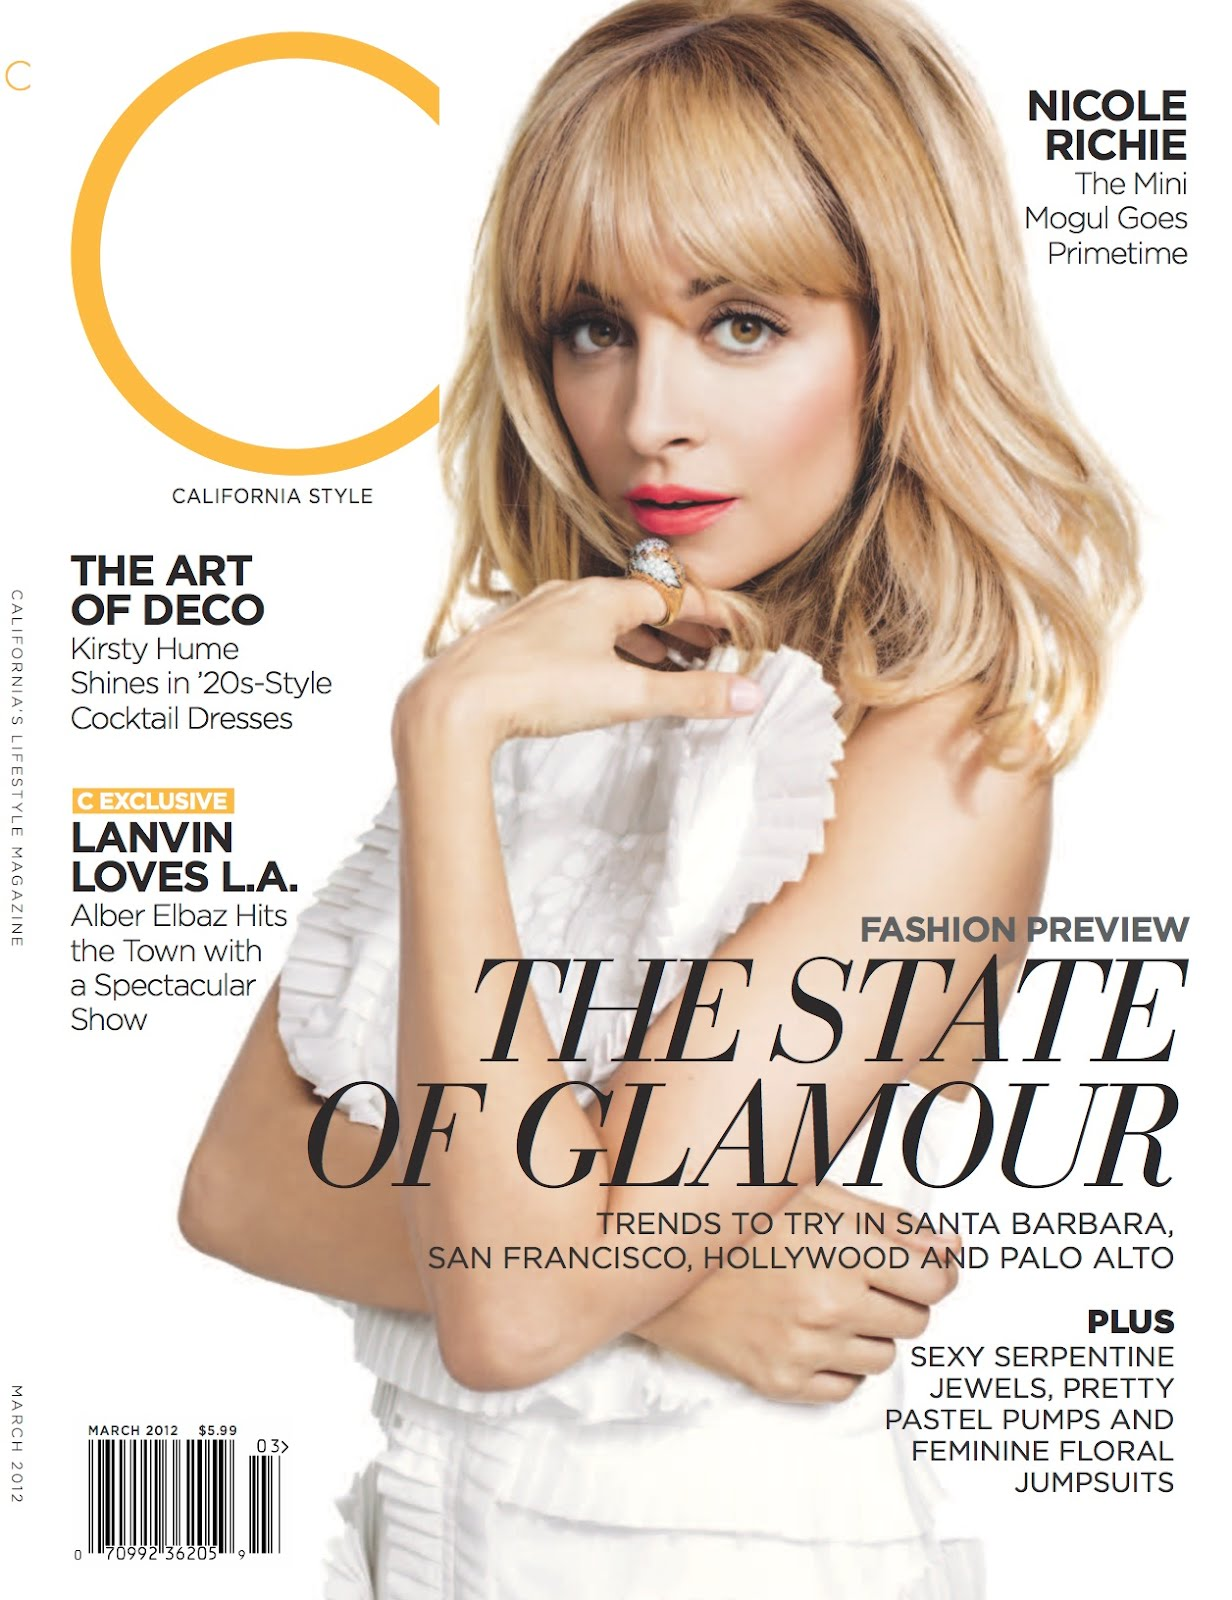 http://1.bp.blogspot.com/-qpnyEd2T5Wg/Tz6nqPo8zcI/AAAAAAAALIo/IJ_2tG-8OgI/s1600/C-MAGAZINEcover-March2012-Nicole-Richie-Cover11.jpg